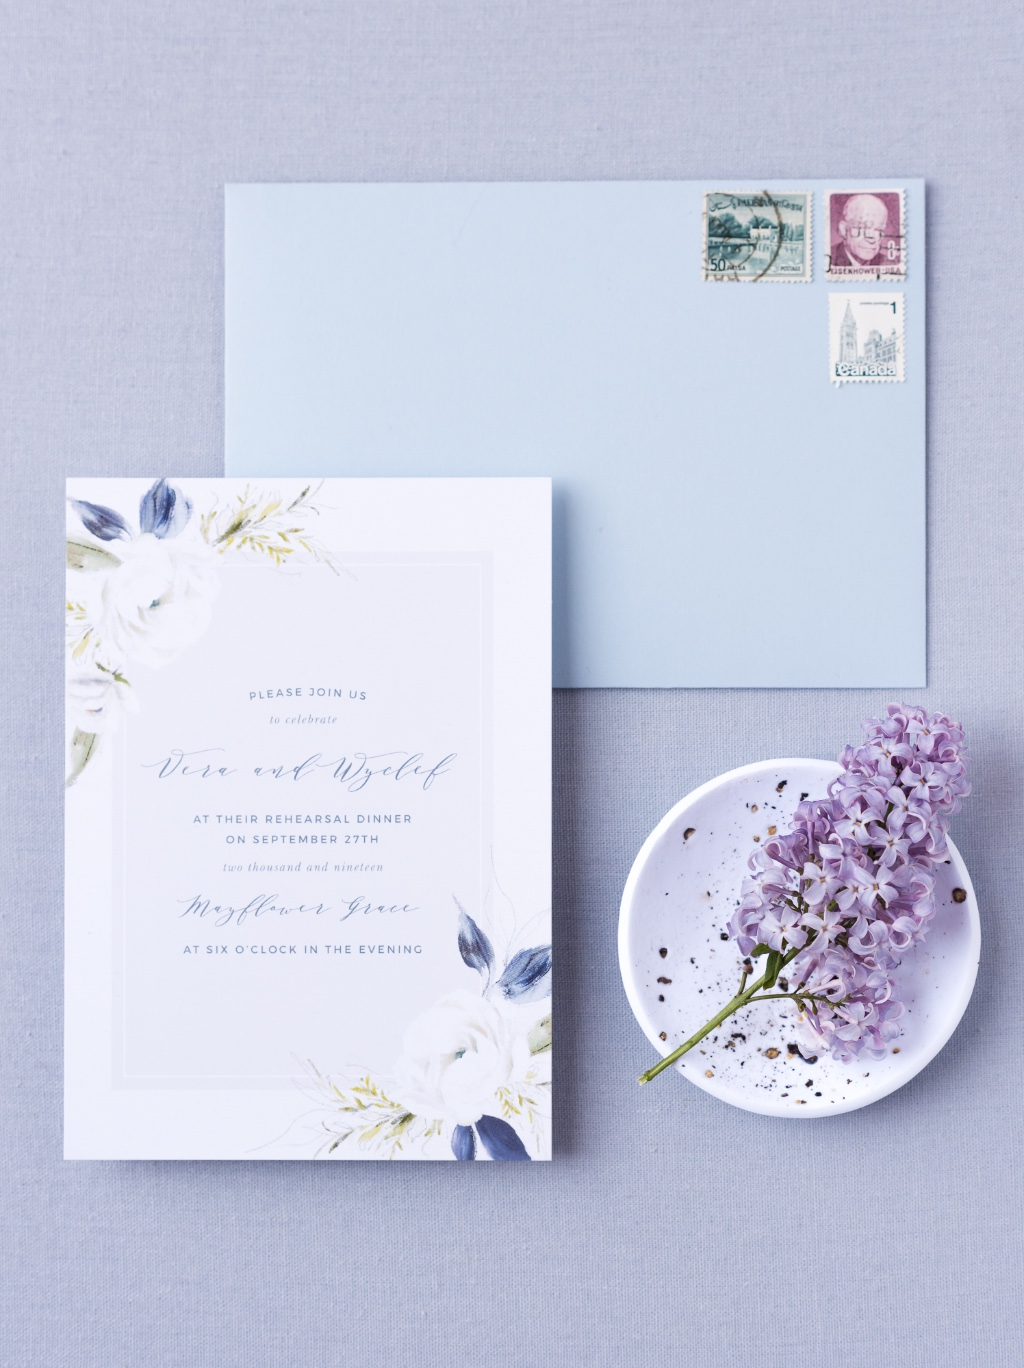 The most beautiful floral wedding invitation for the botanical-loving bride. The Oil Paint Textured Wedding Invitation is a gorgeous